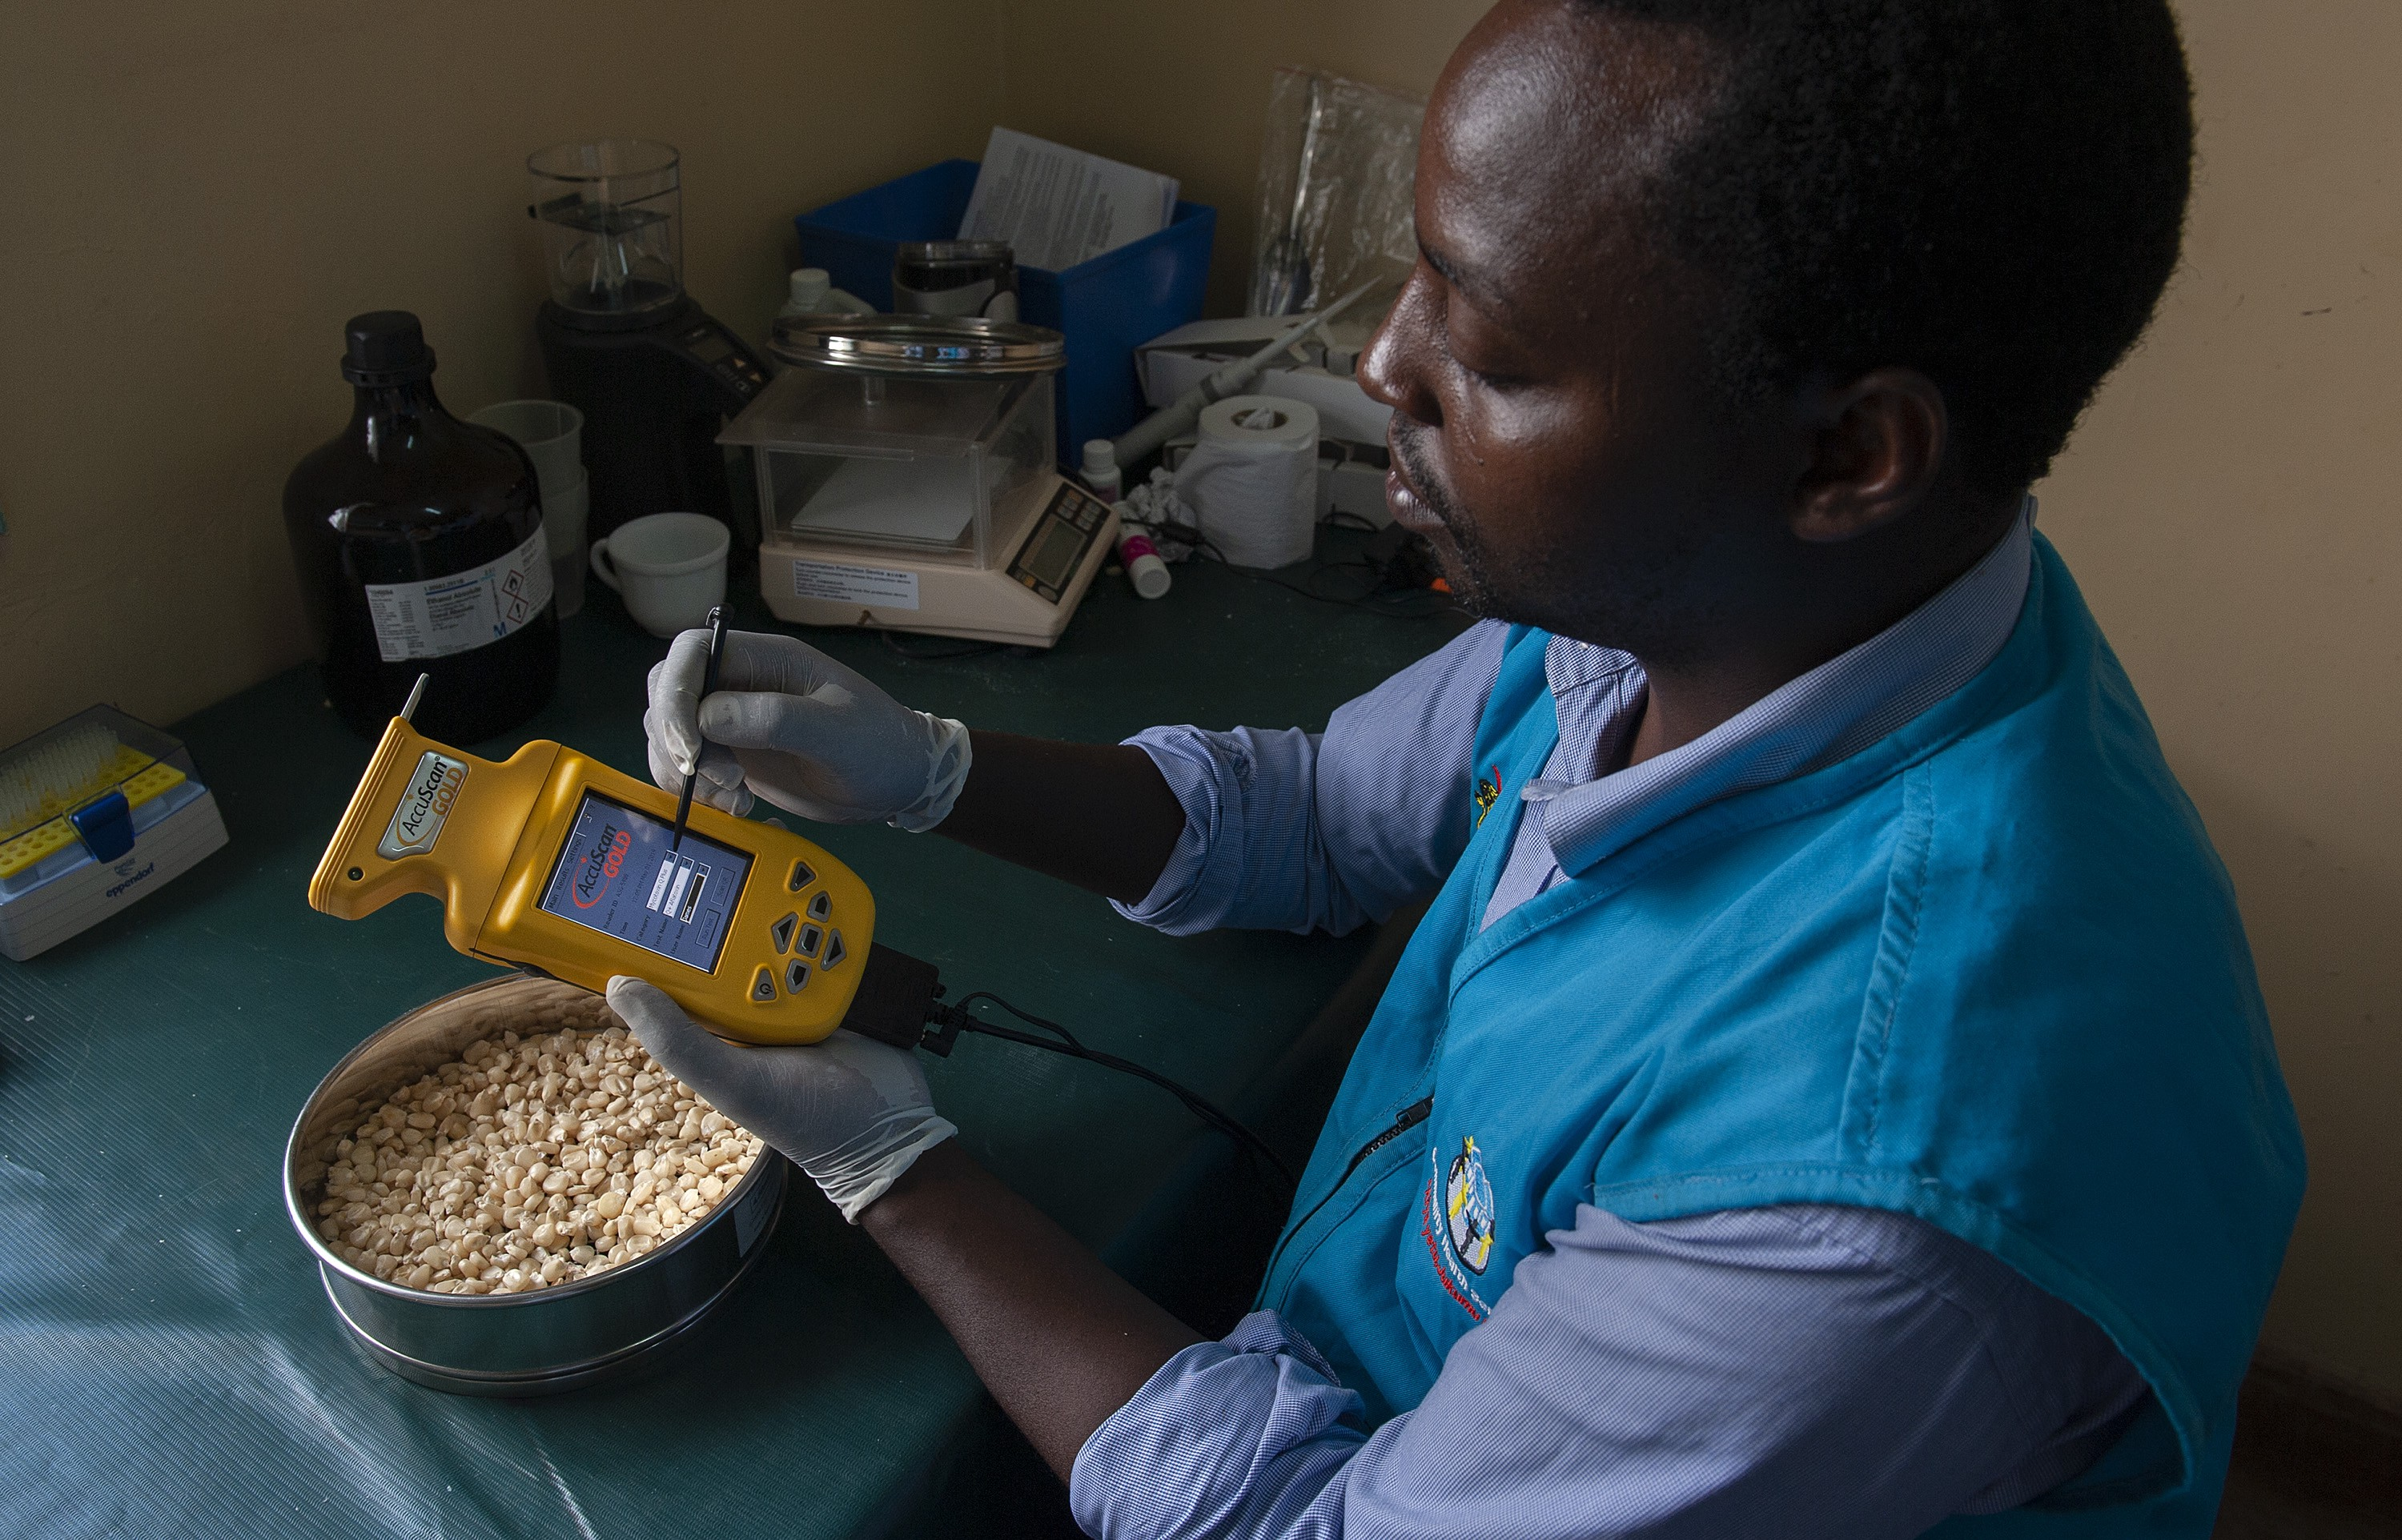 Meeting demand in Kenya for food safety and quality control